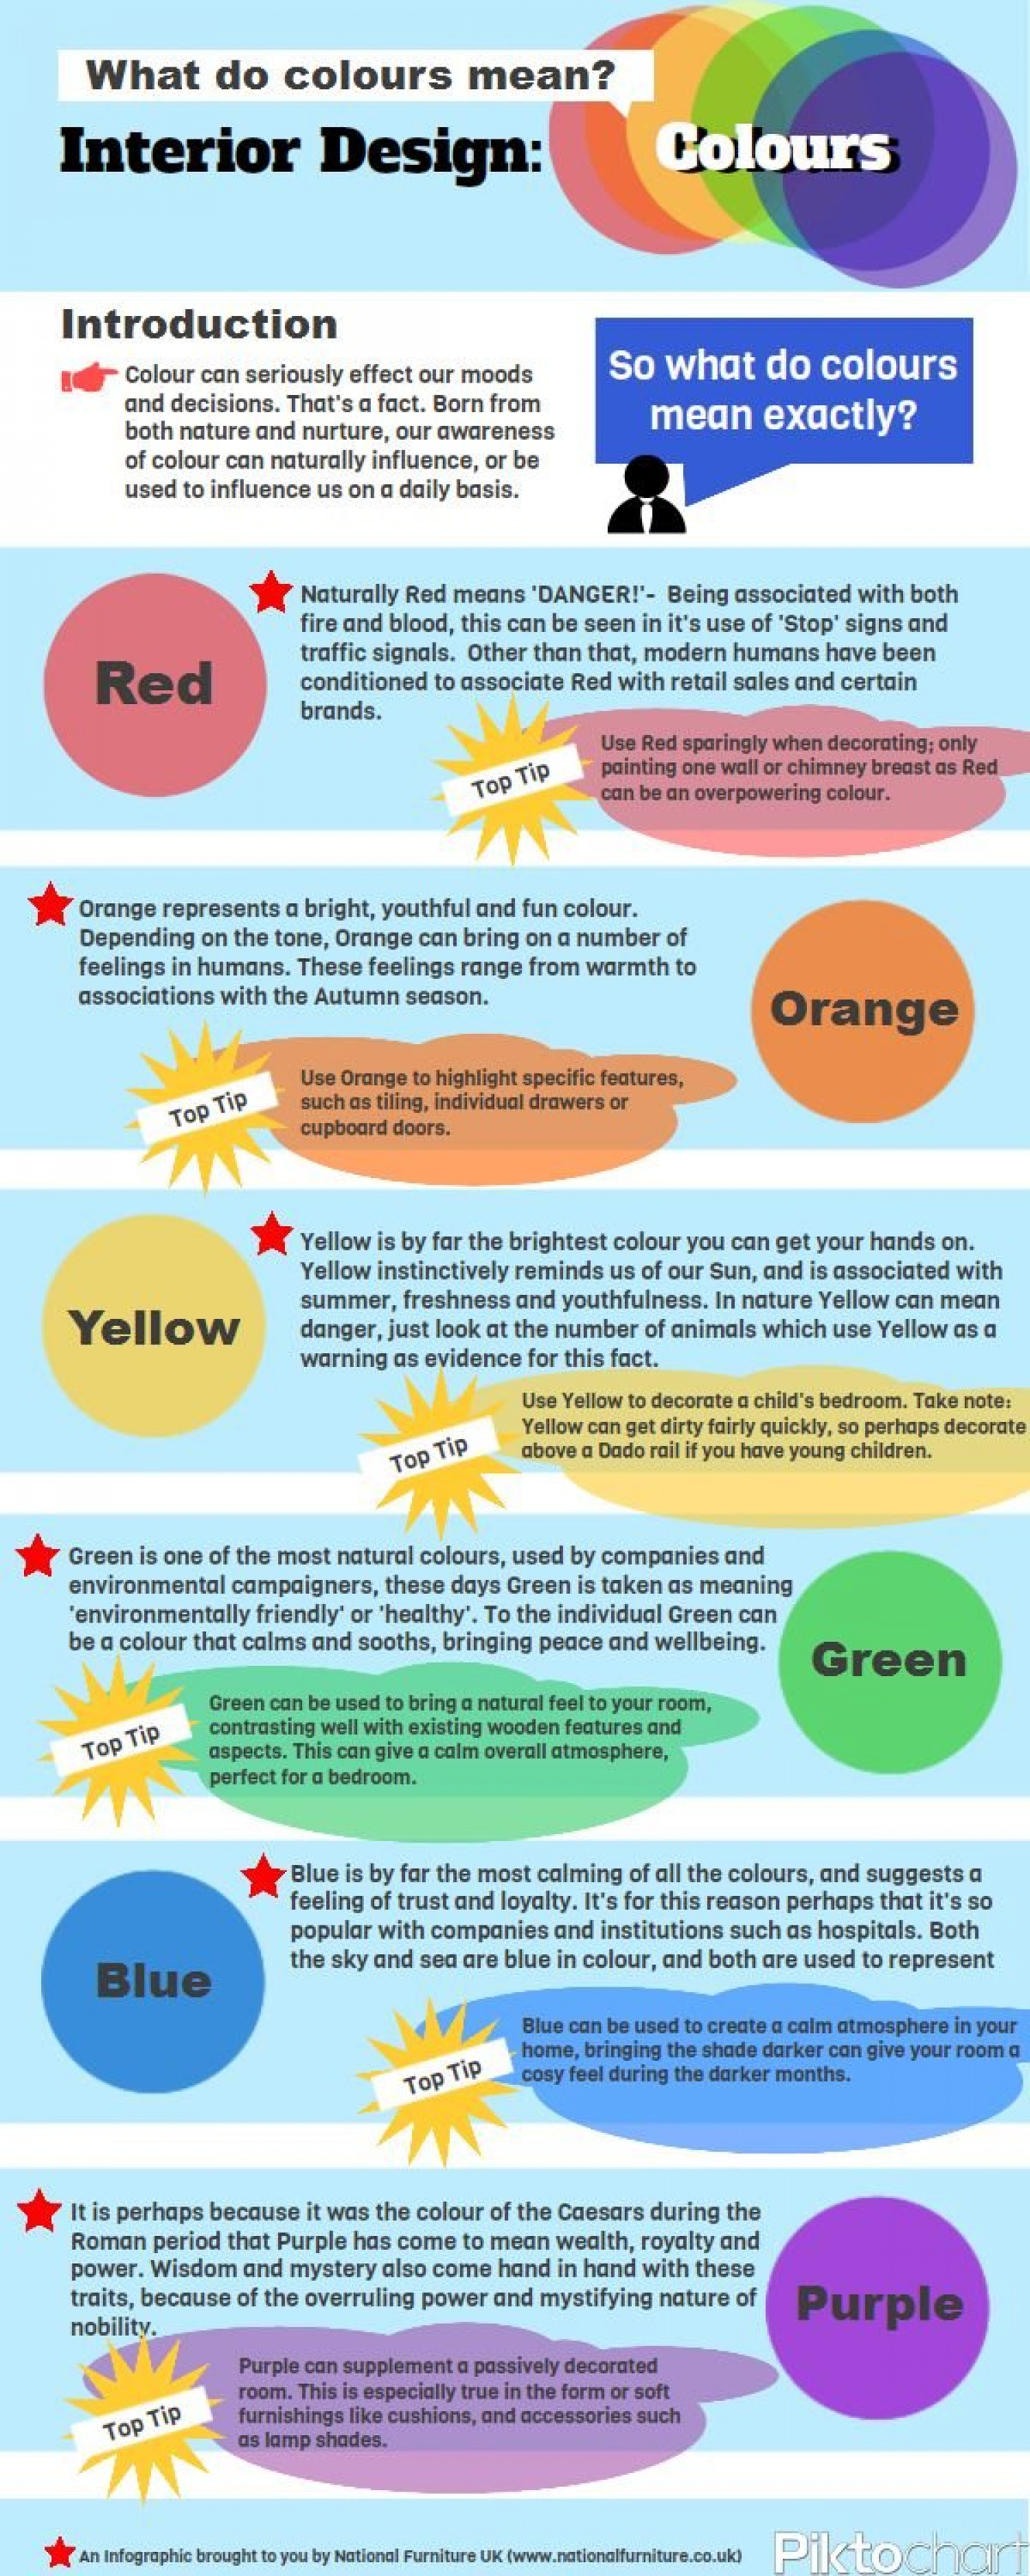 What Do Colours Mean? Interior Design | Visual.ly